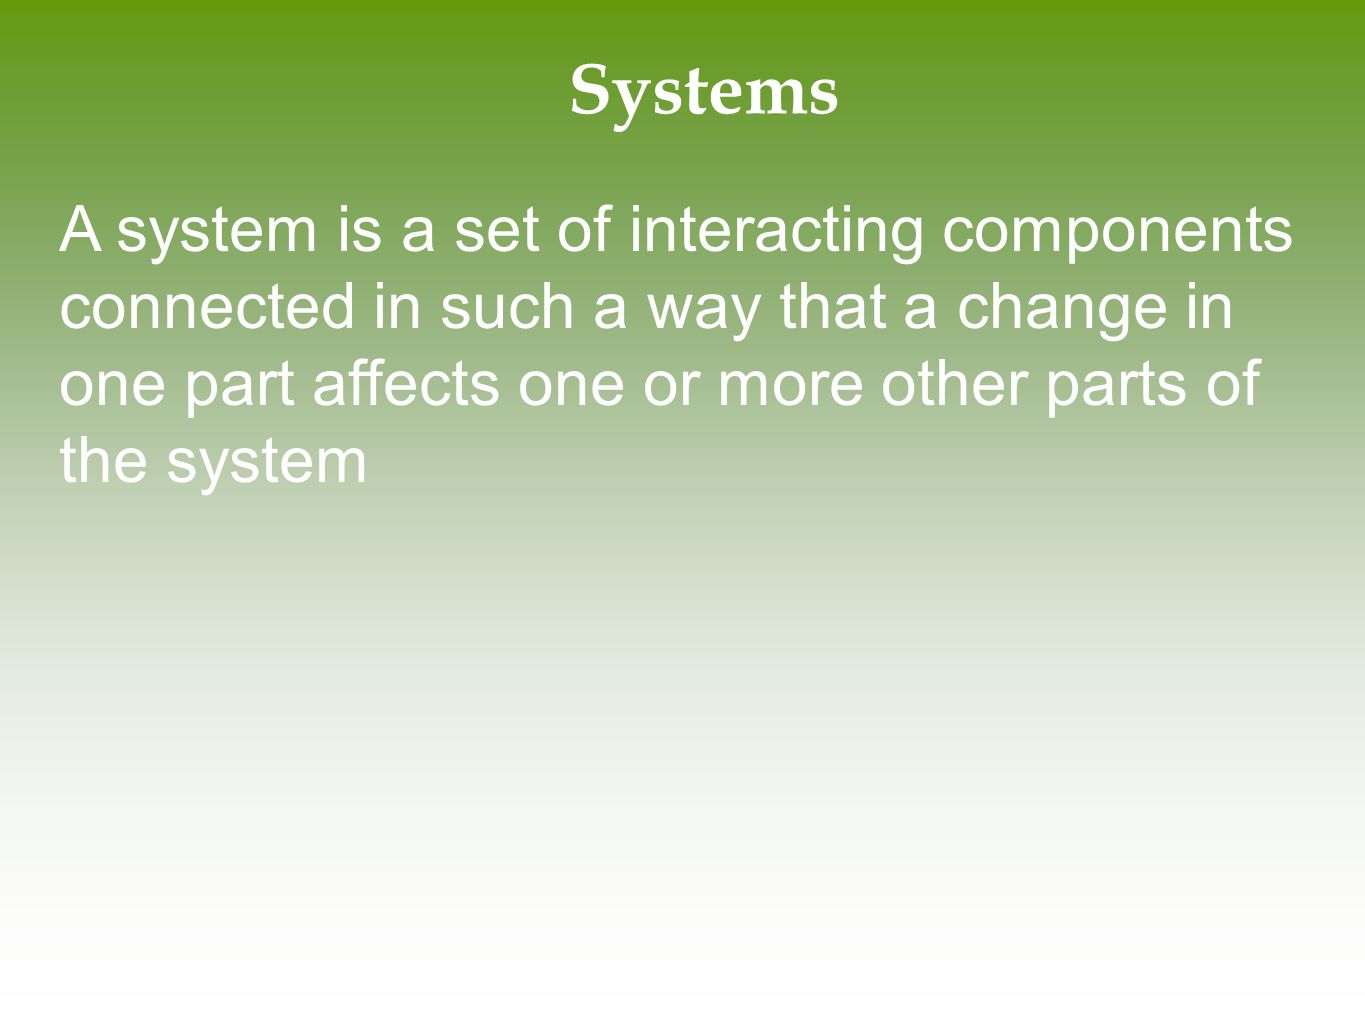 Systems A system is a set of interacting components connected in such a way that a change in one part affects one or more other parts of the system.